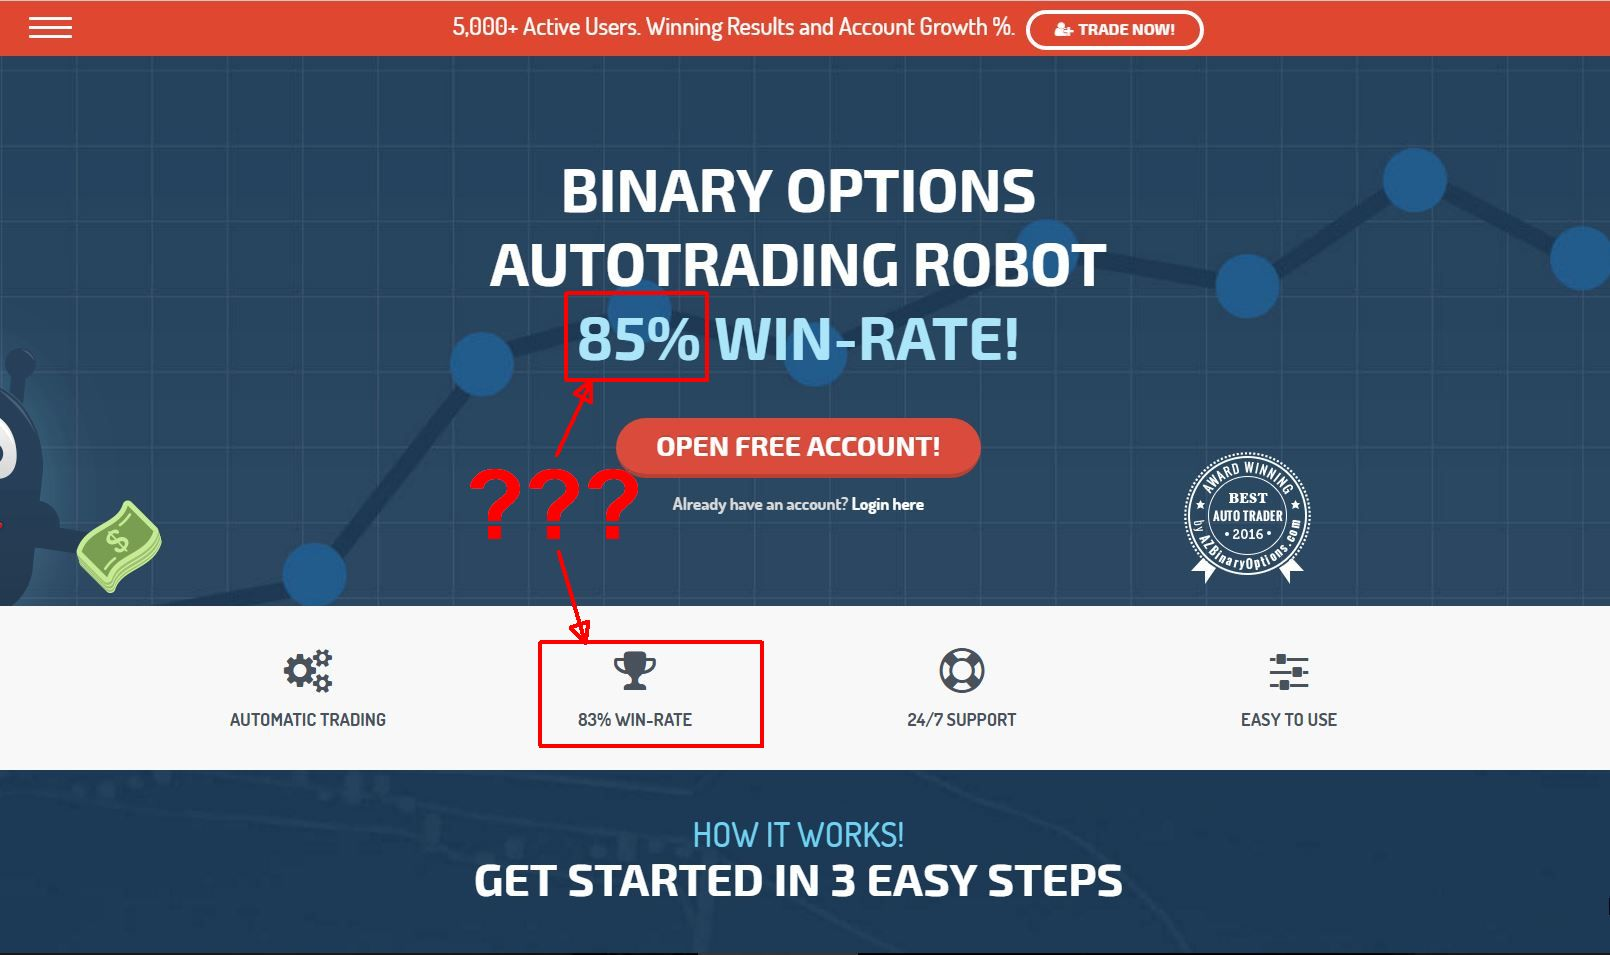 binary options robot results transformation